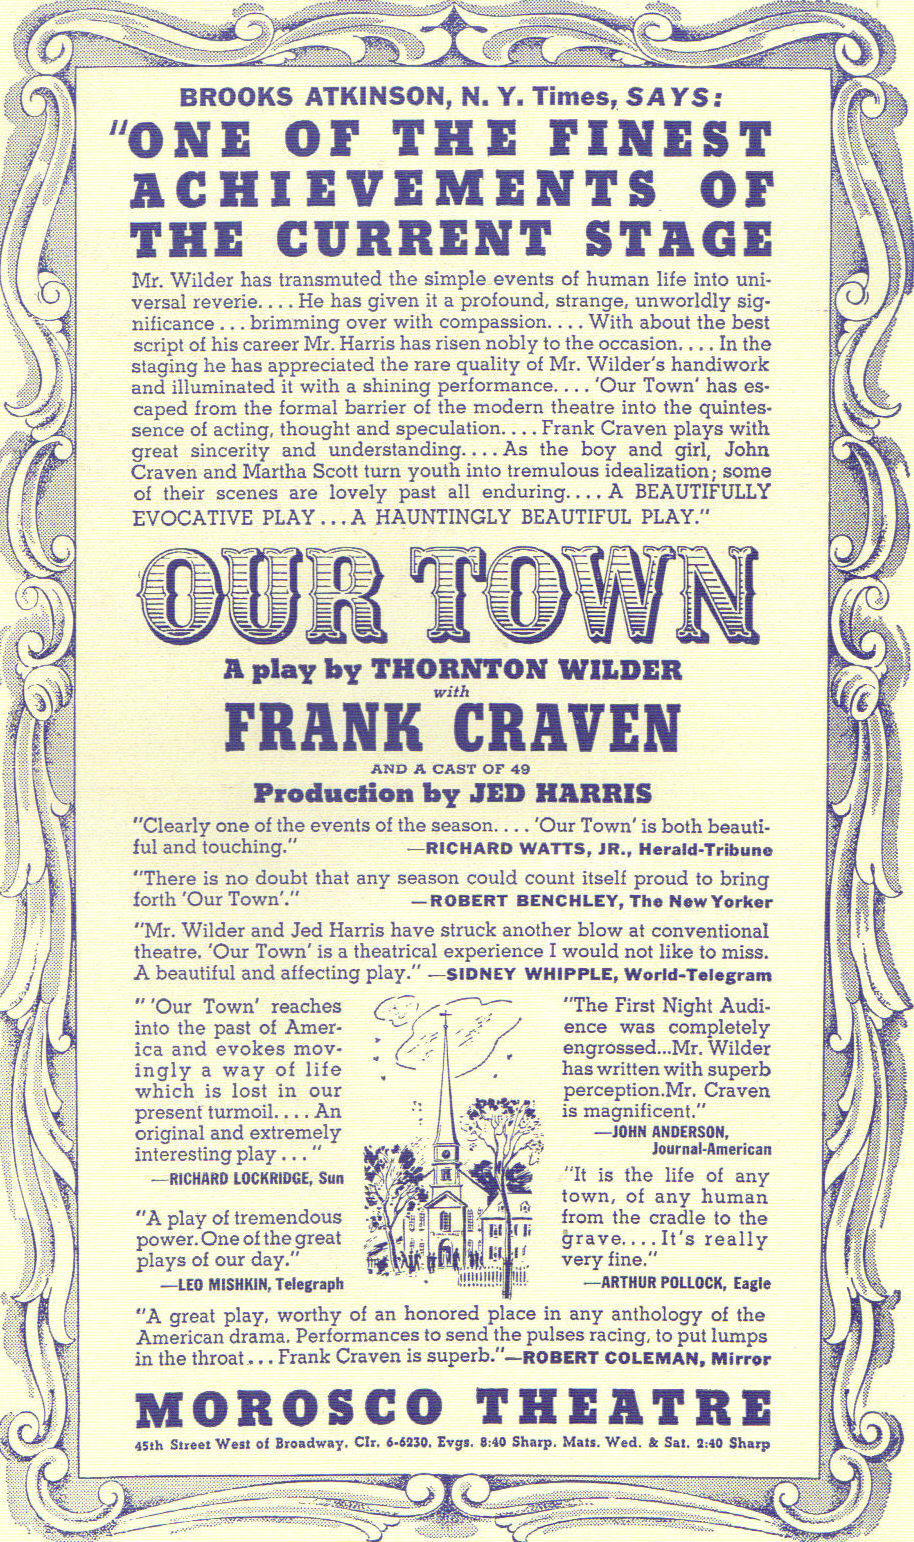 flyer-from-1938-production-of-our-town_4306487299_o.jpg